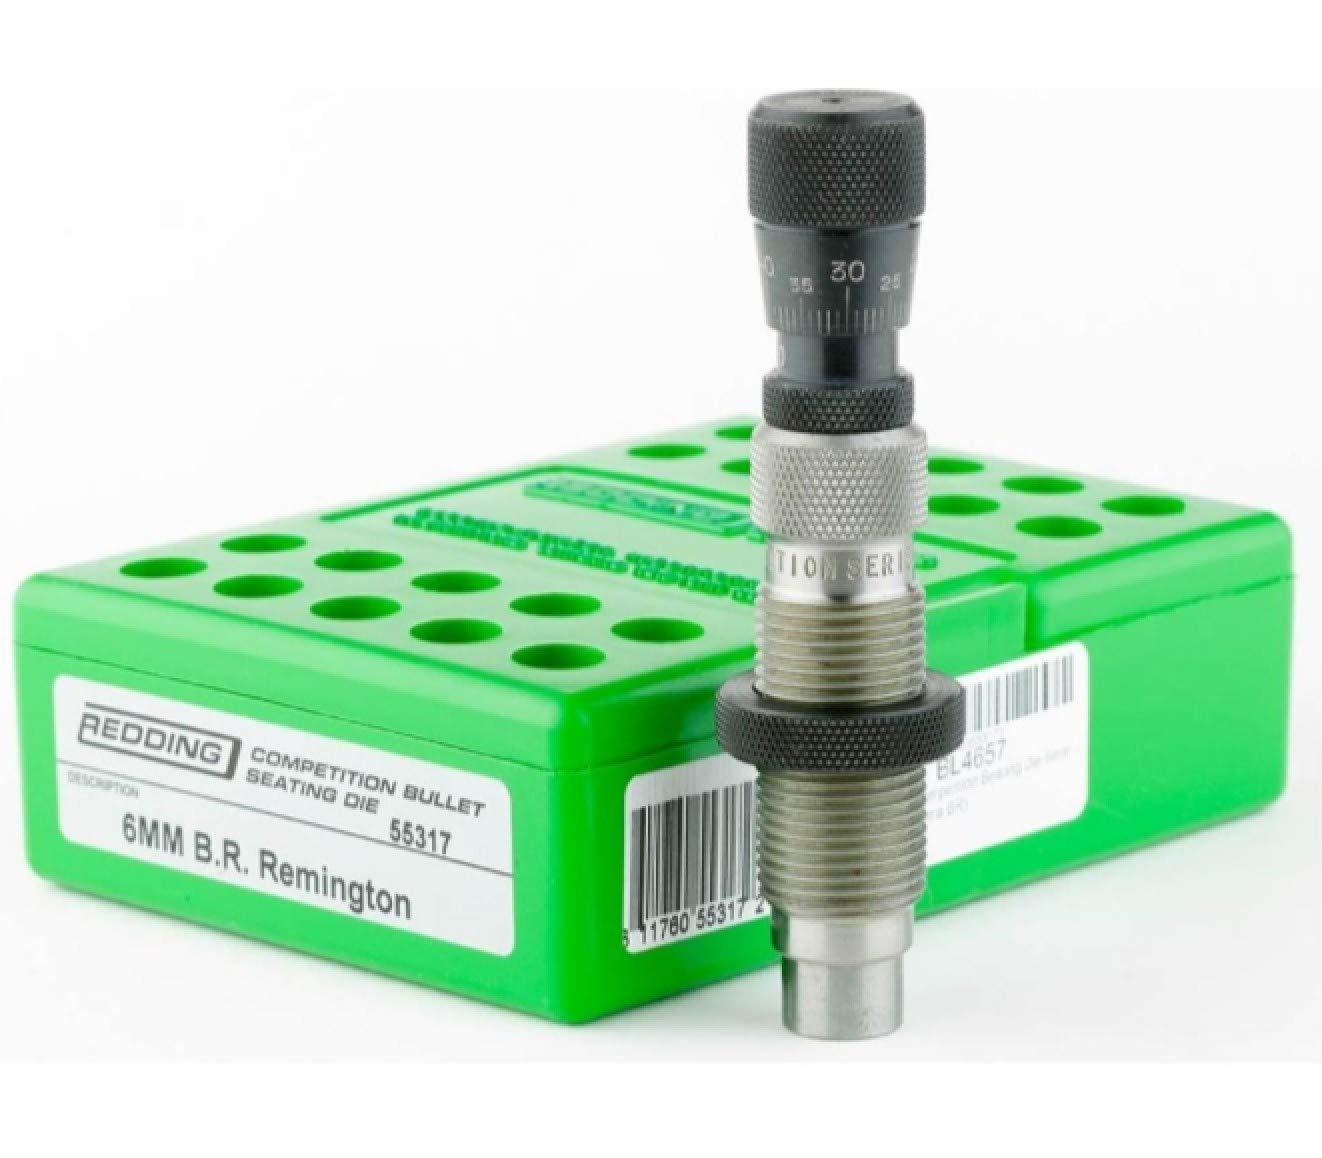 Redding Reloading Master Hunter Die Set with a Competition Seating Die .308 Winchester 55155